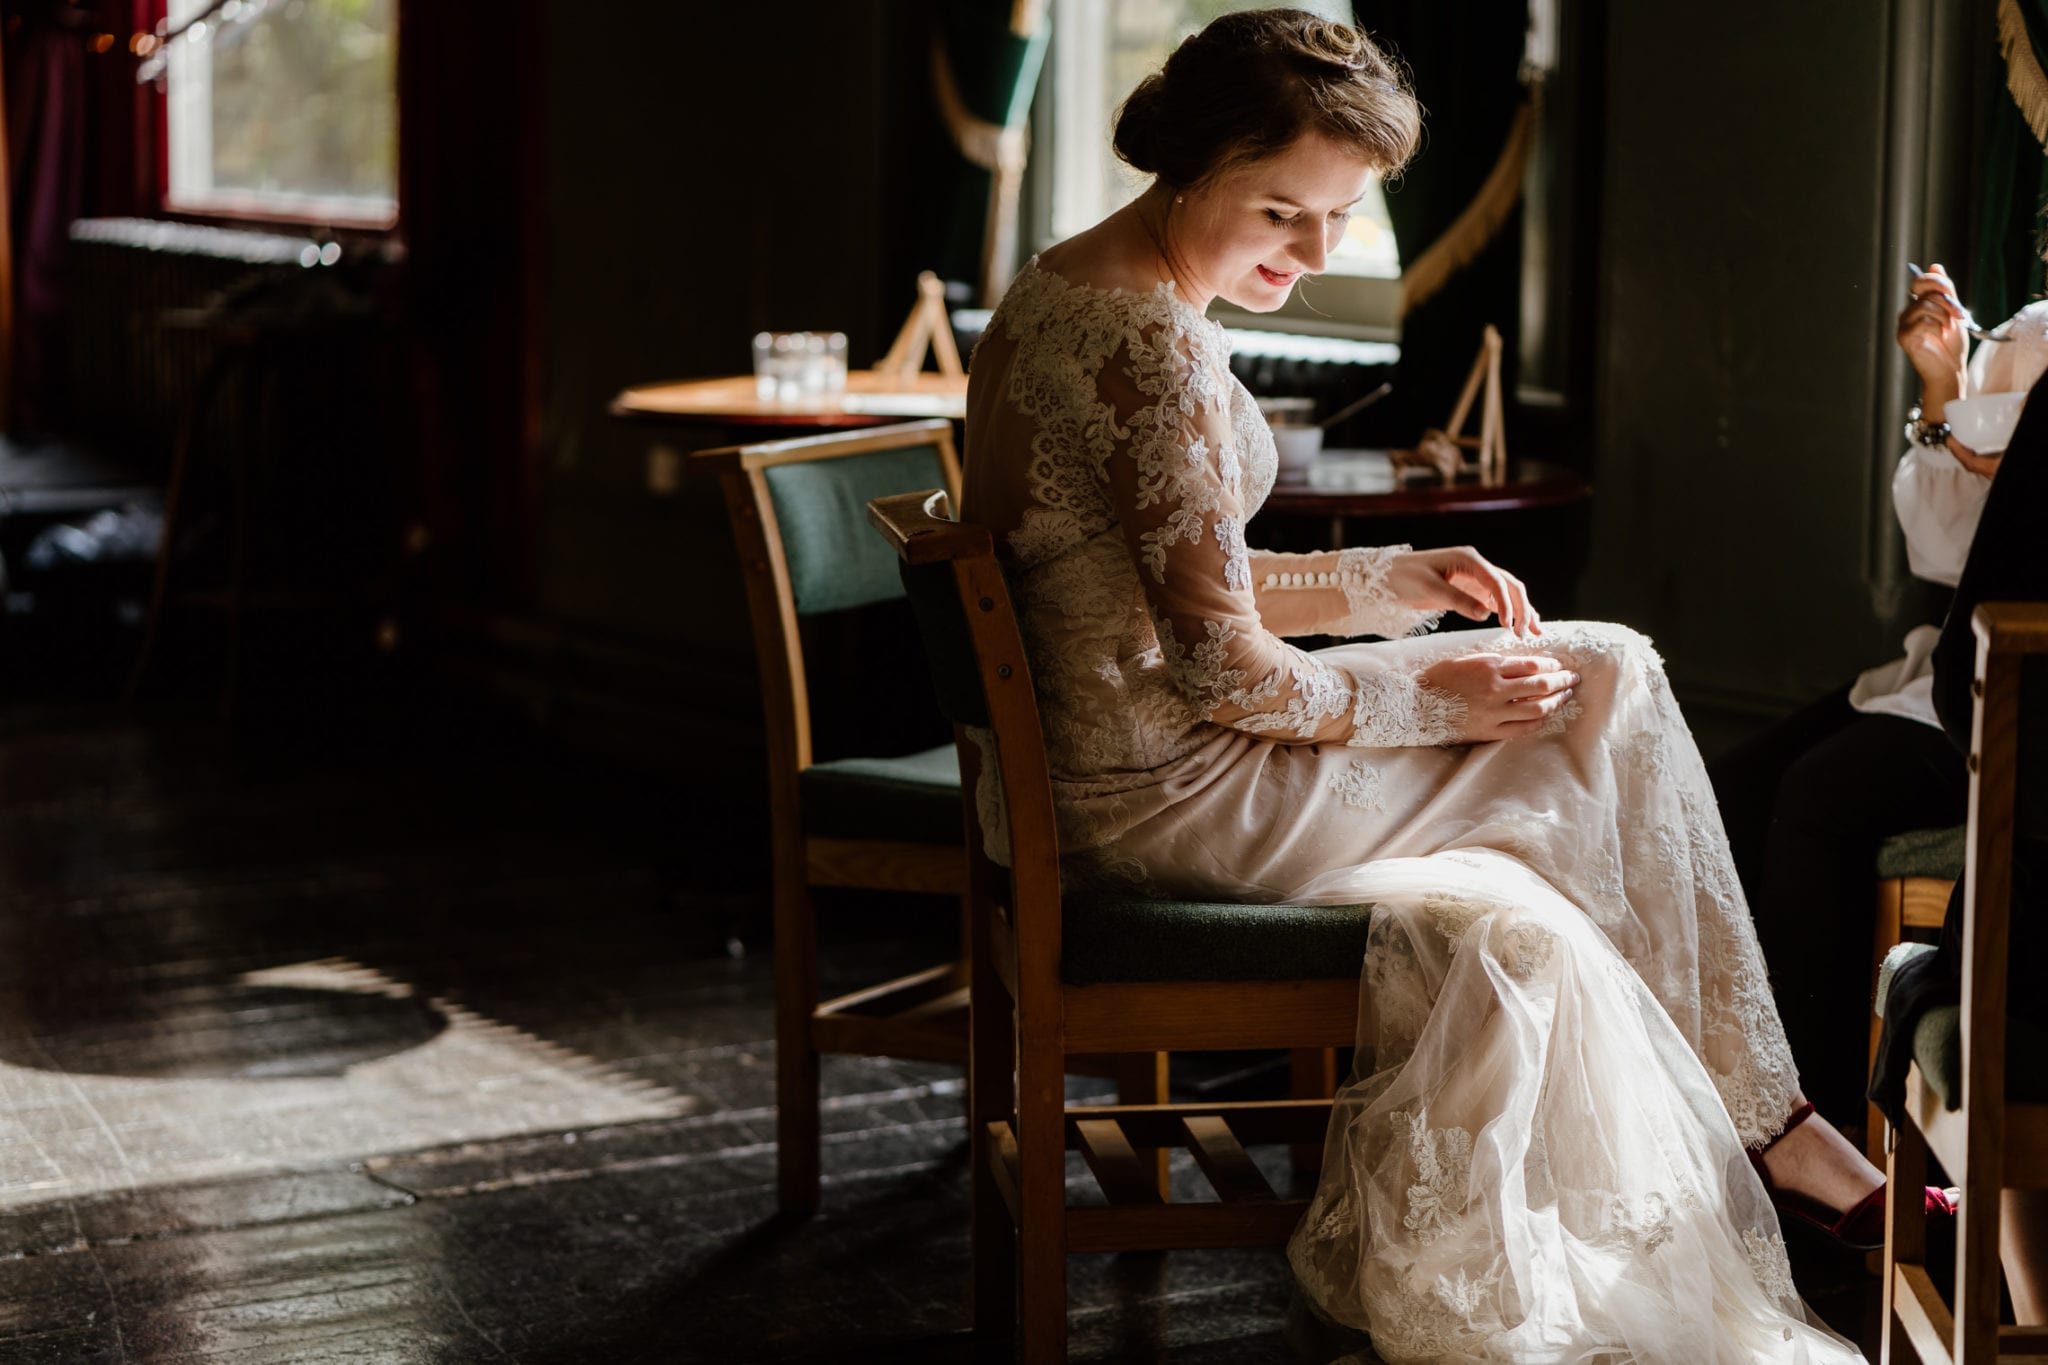 Bride sits in a chair bathed in window light